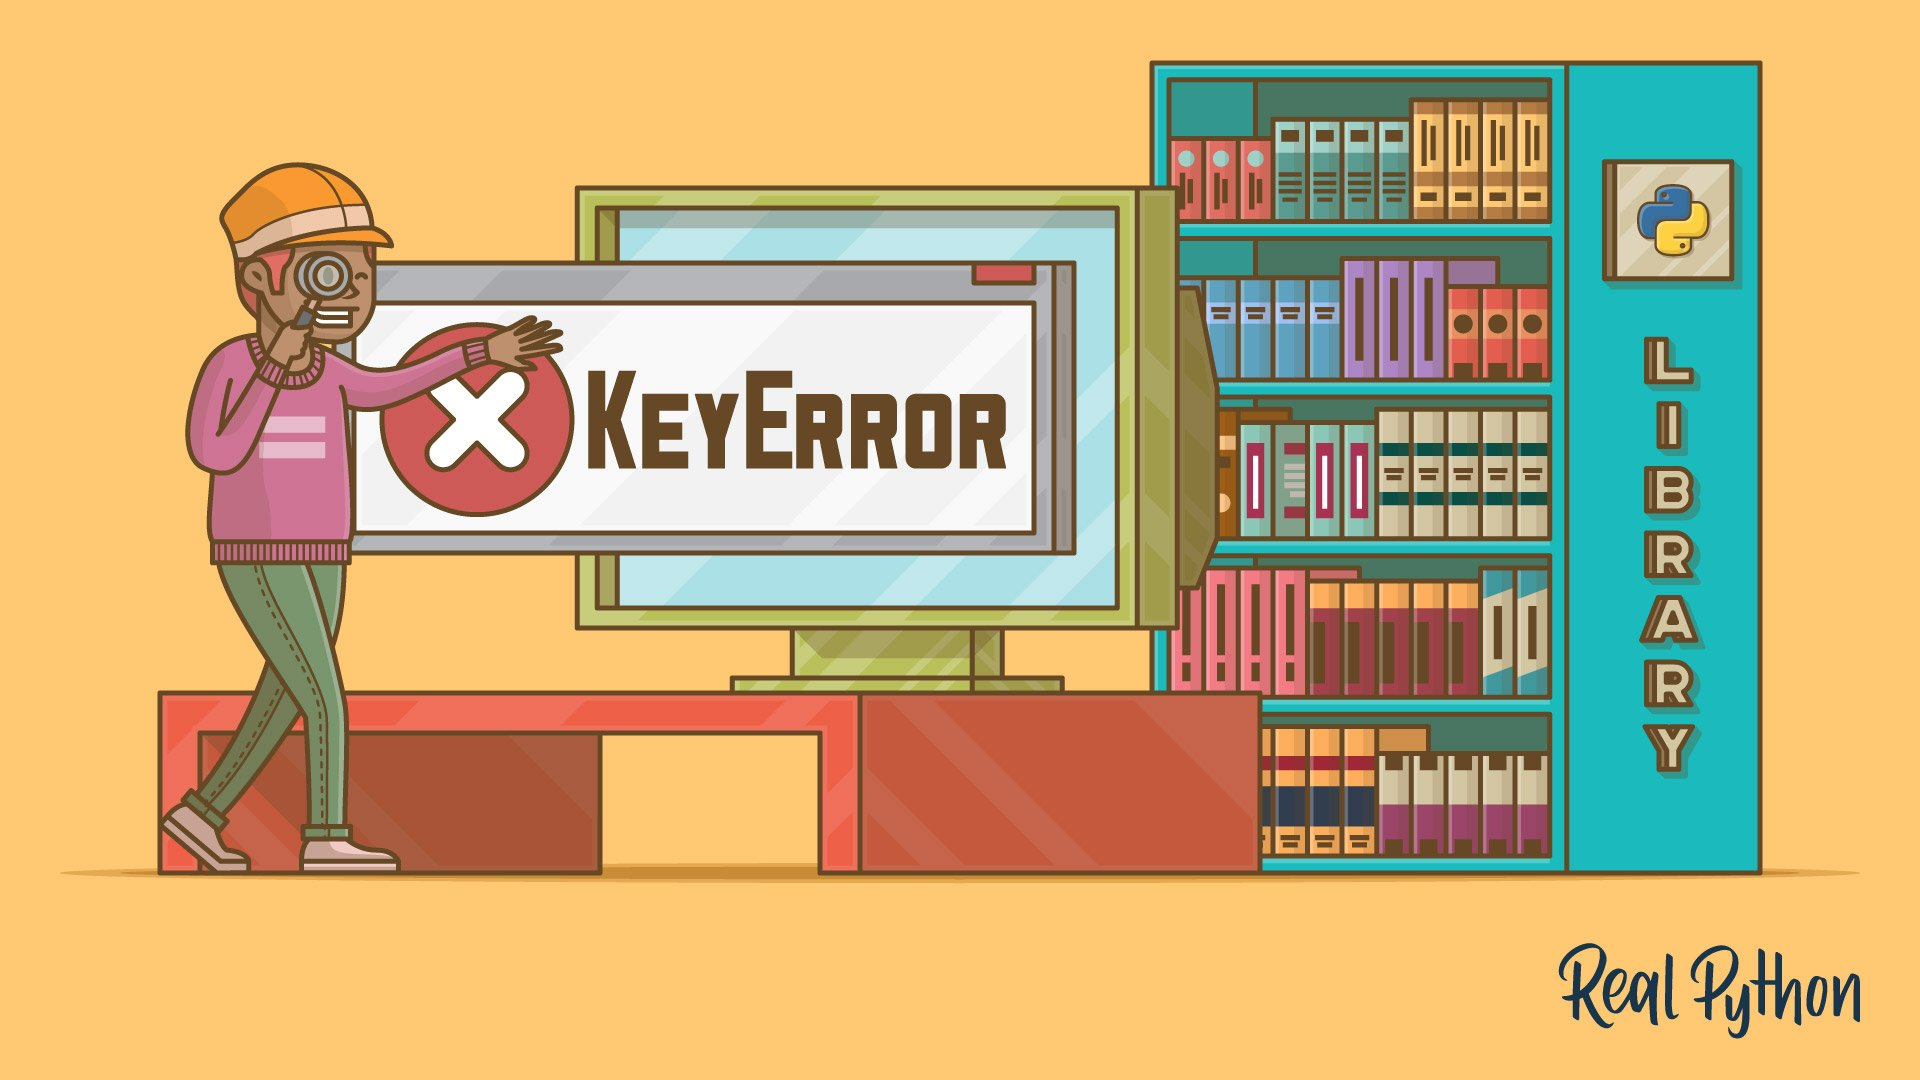 Python KeyError Exceptions and How to Handle Them